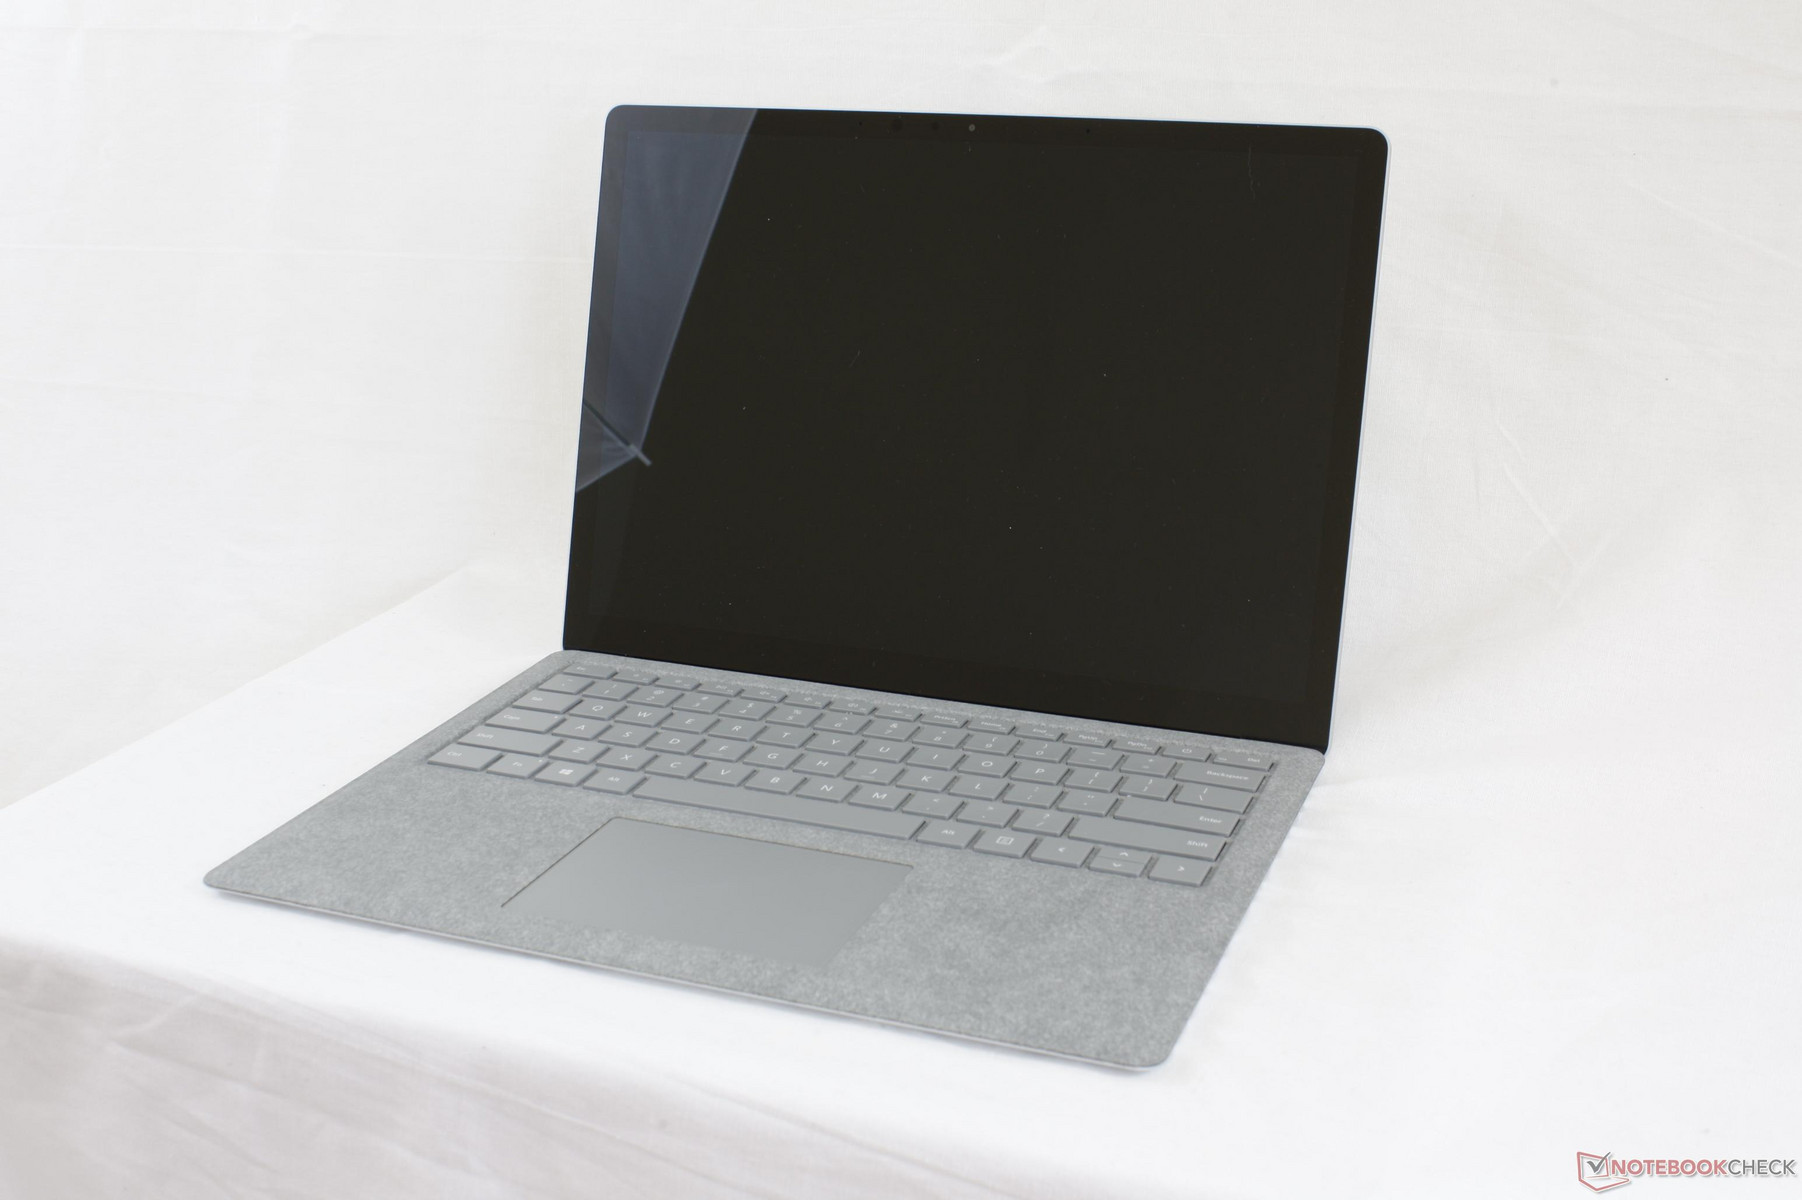 Microsoft Surface I7 7660u Laptop Review Reviews 4 Core 8gb 256gb In